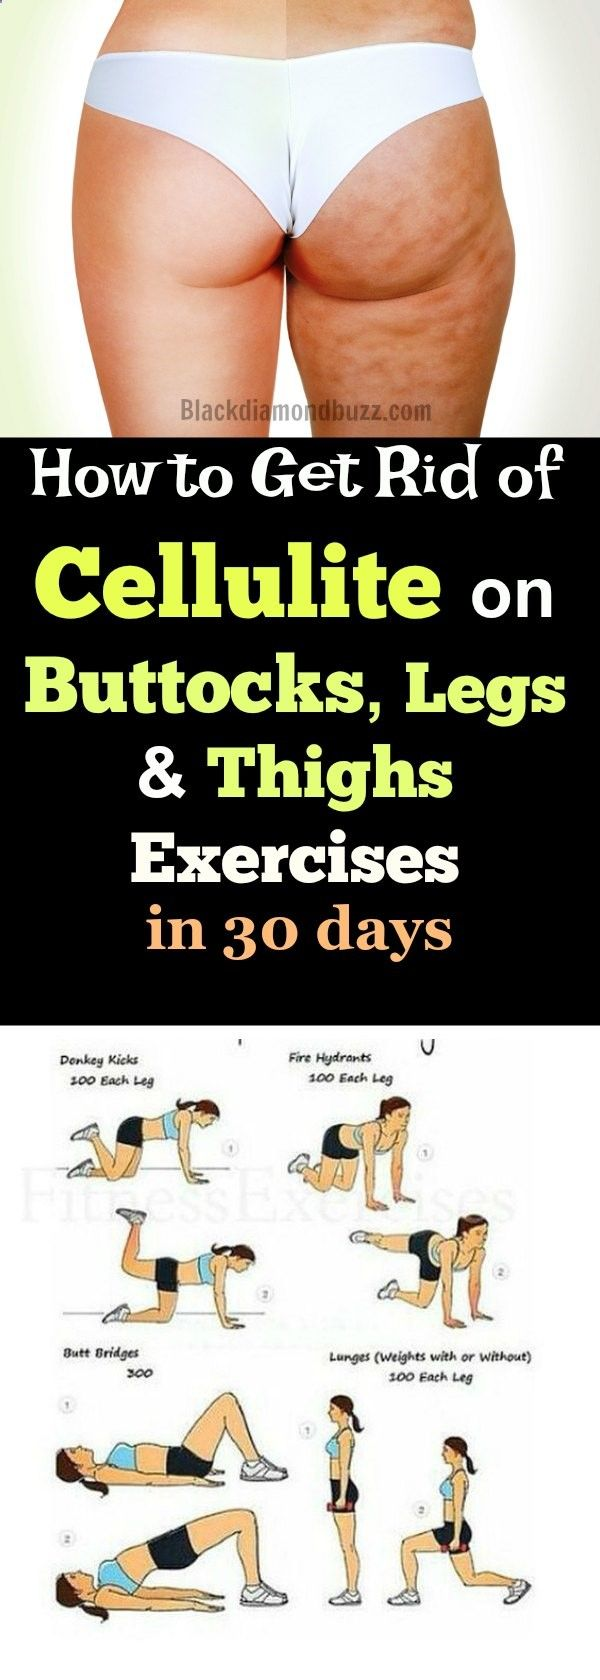 How to Get Rid of Cellulite on Buttocks, Legs and Thigh Exercises in 30 Days. Summer is here, everybody wants to look sexy on the beach and nobody want to display those stubborn cellulites on thighs and bum. So you are not alone here, if you are looking for exercises to get rid of cellulite on buttocks and thighs. Many people including male and females suffer from dimple-causing fats on hips. The problem is worse among the females. According to a Cornell University research, almost 98%...